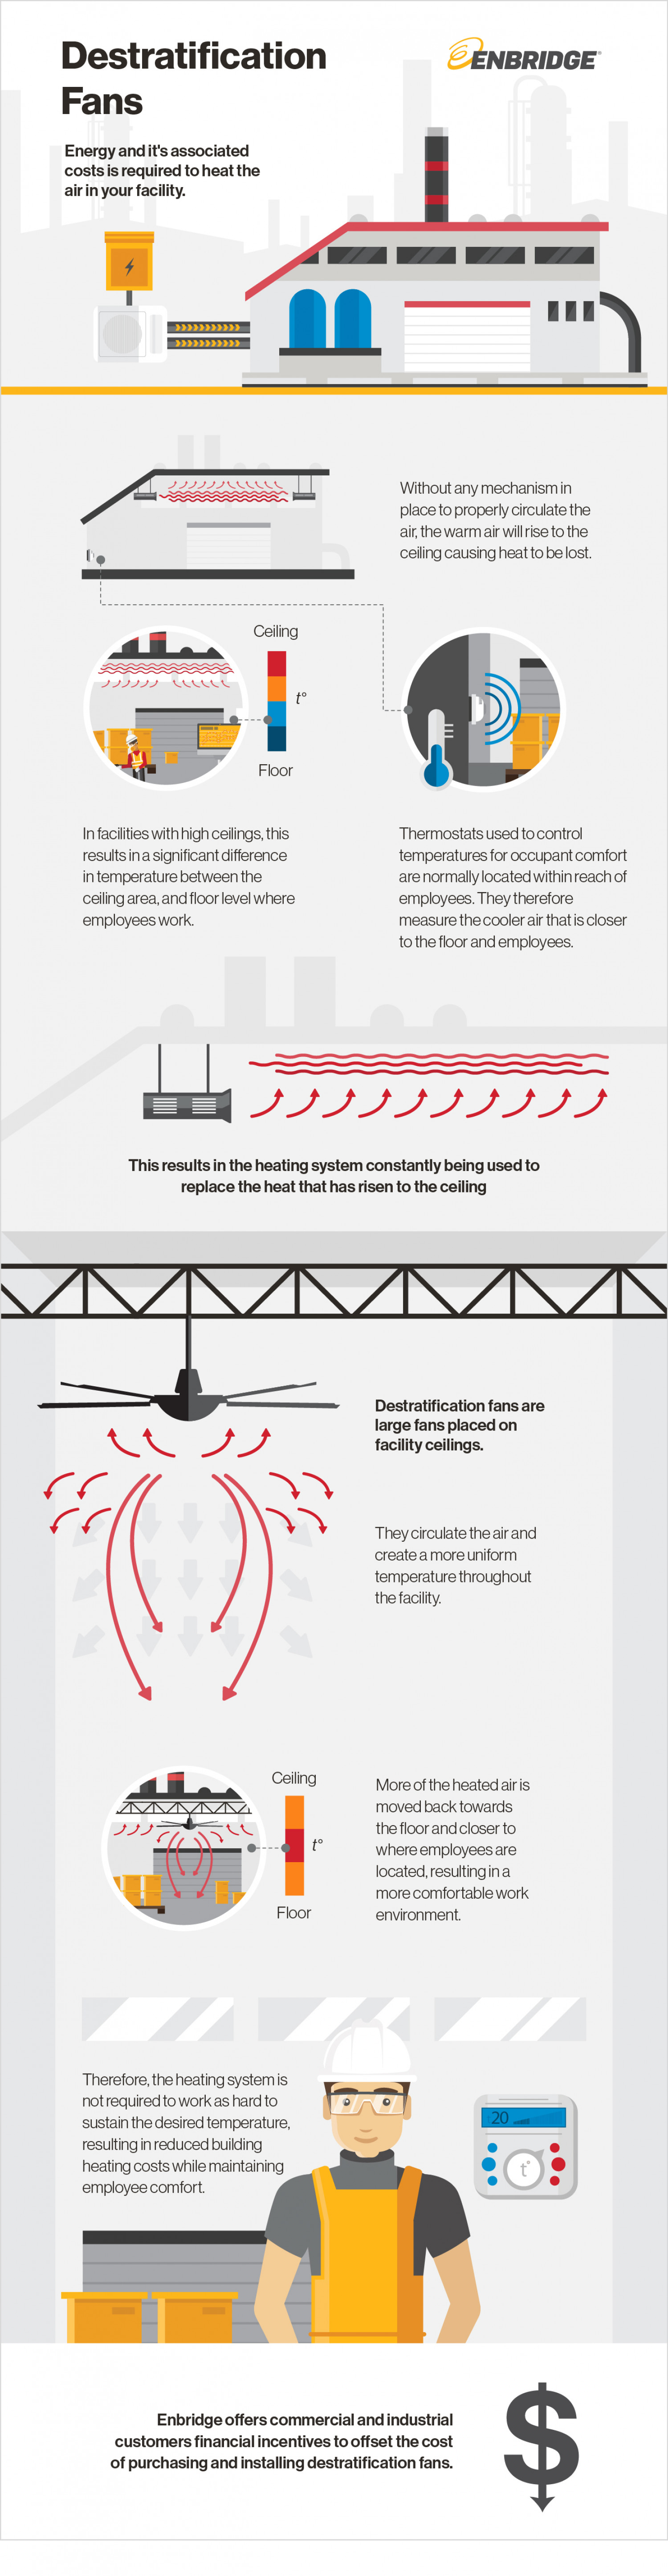 Destratification Fans. Infographic